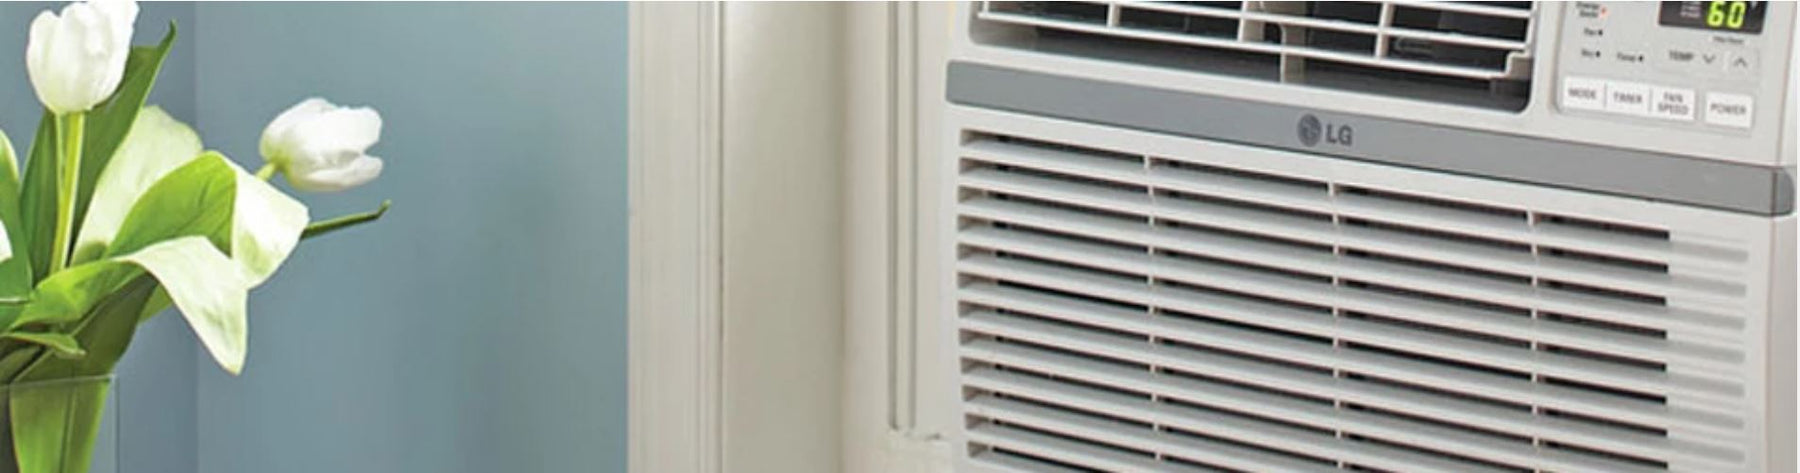 How Much Does a Window Air Conditioner Cost?